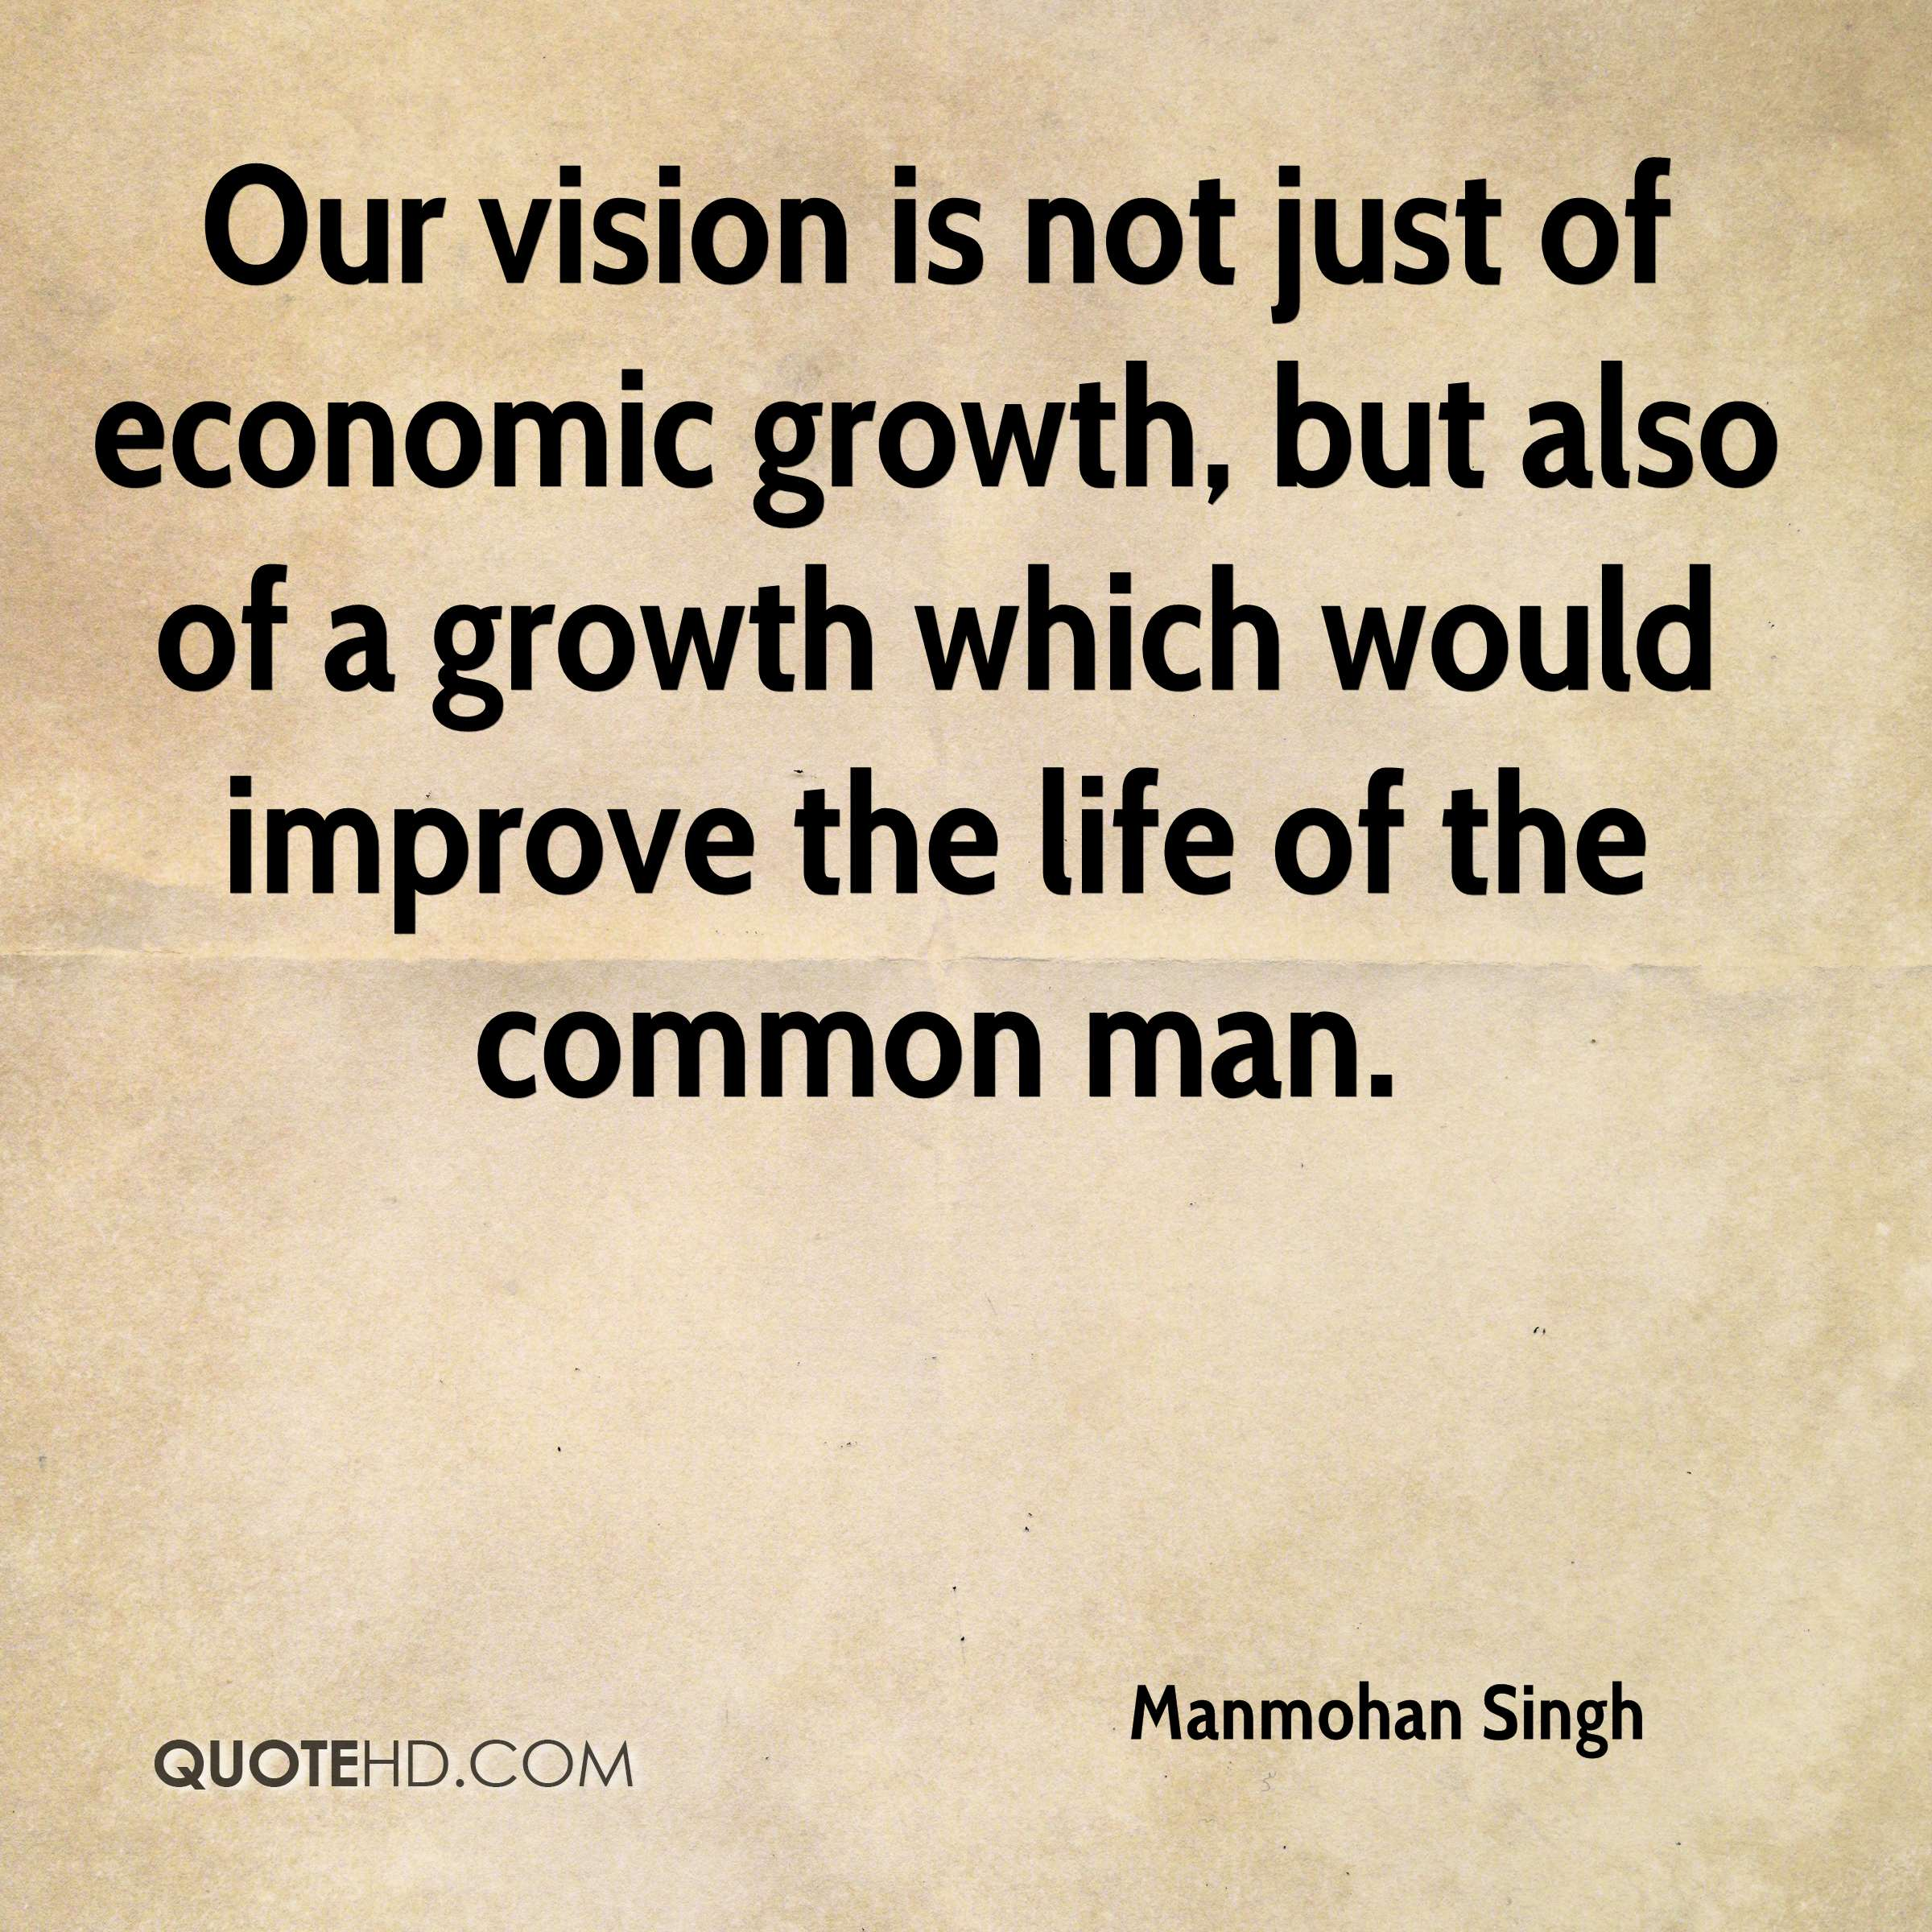 Our vision is not just of economic growth, but also of a growth which would improve the life of the common man.